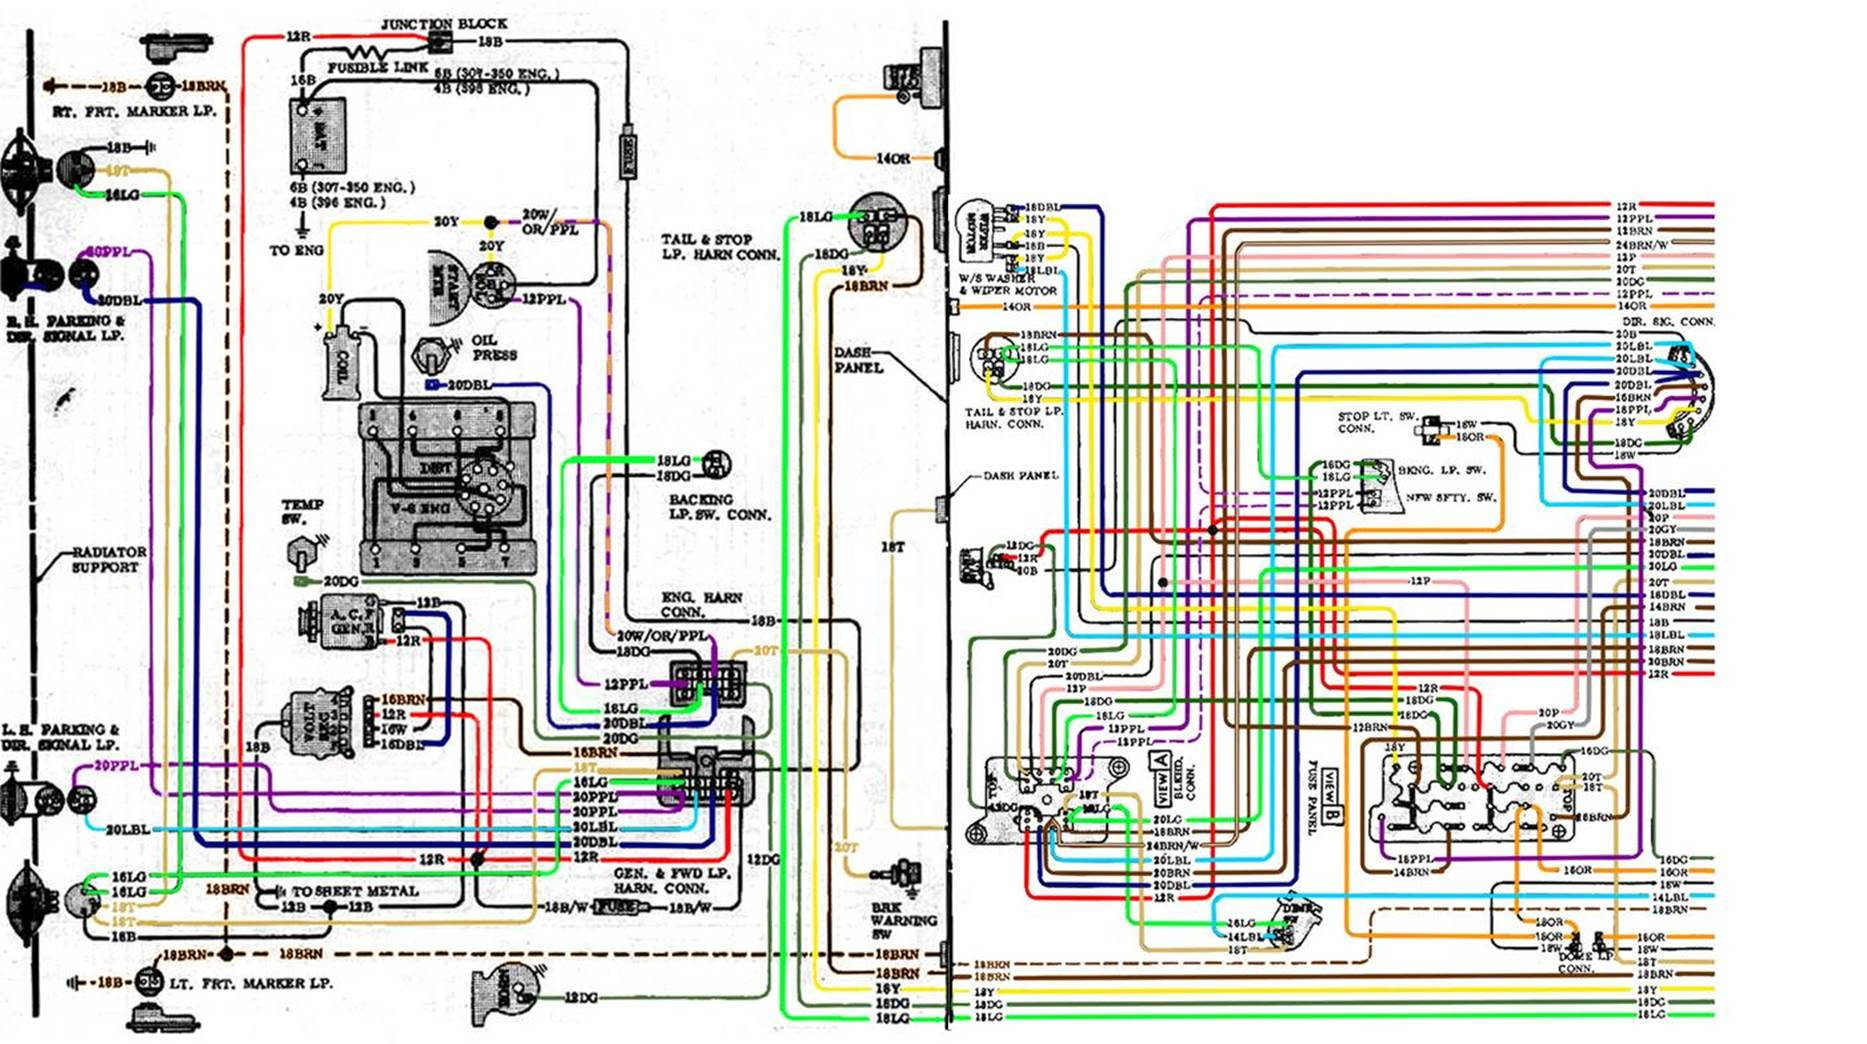 image002 67 72 chevy wiring diagram 1972 chevelle complete wiring harness at cos-gaming.co